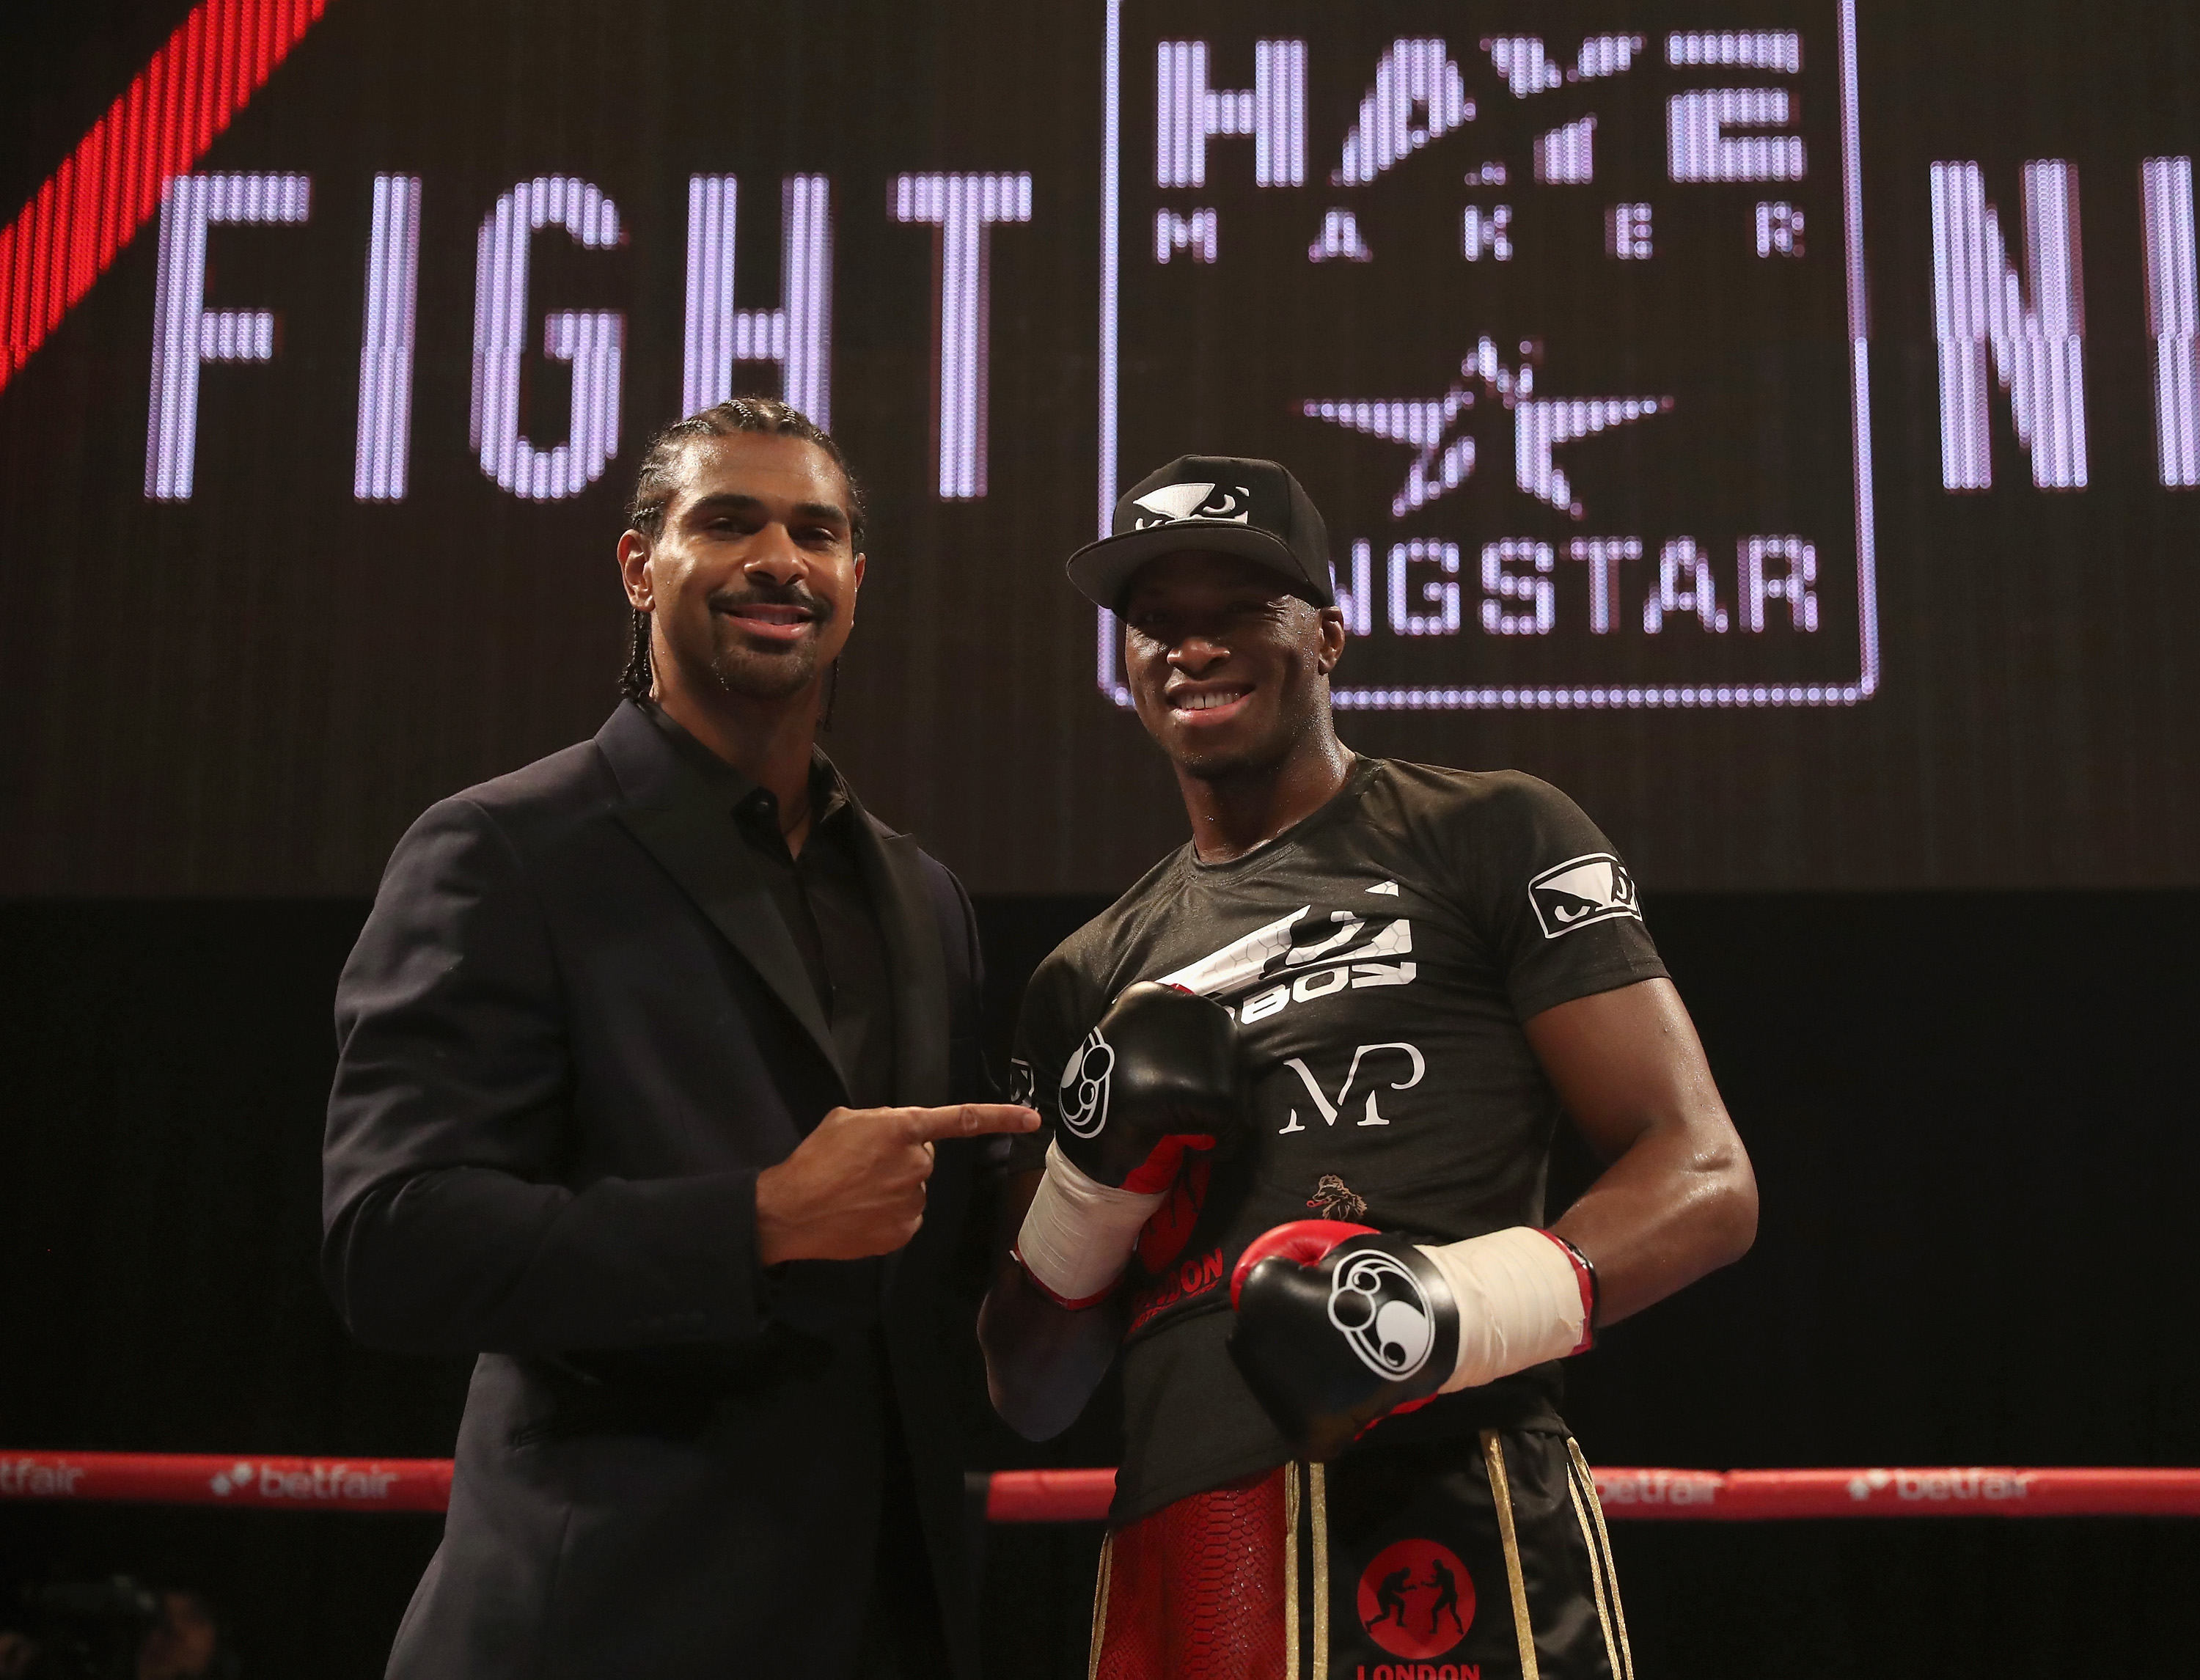 Venom Page is currently signed to David Haye boxing promotion and stands 2-0 as a professional